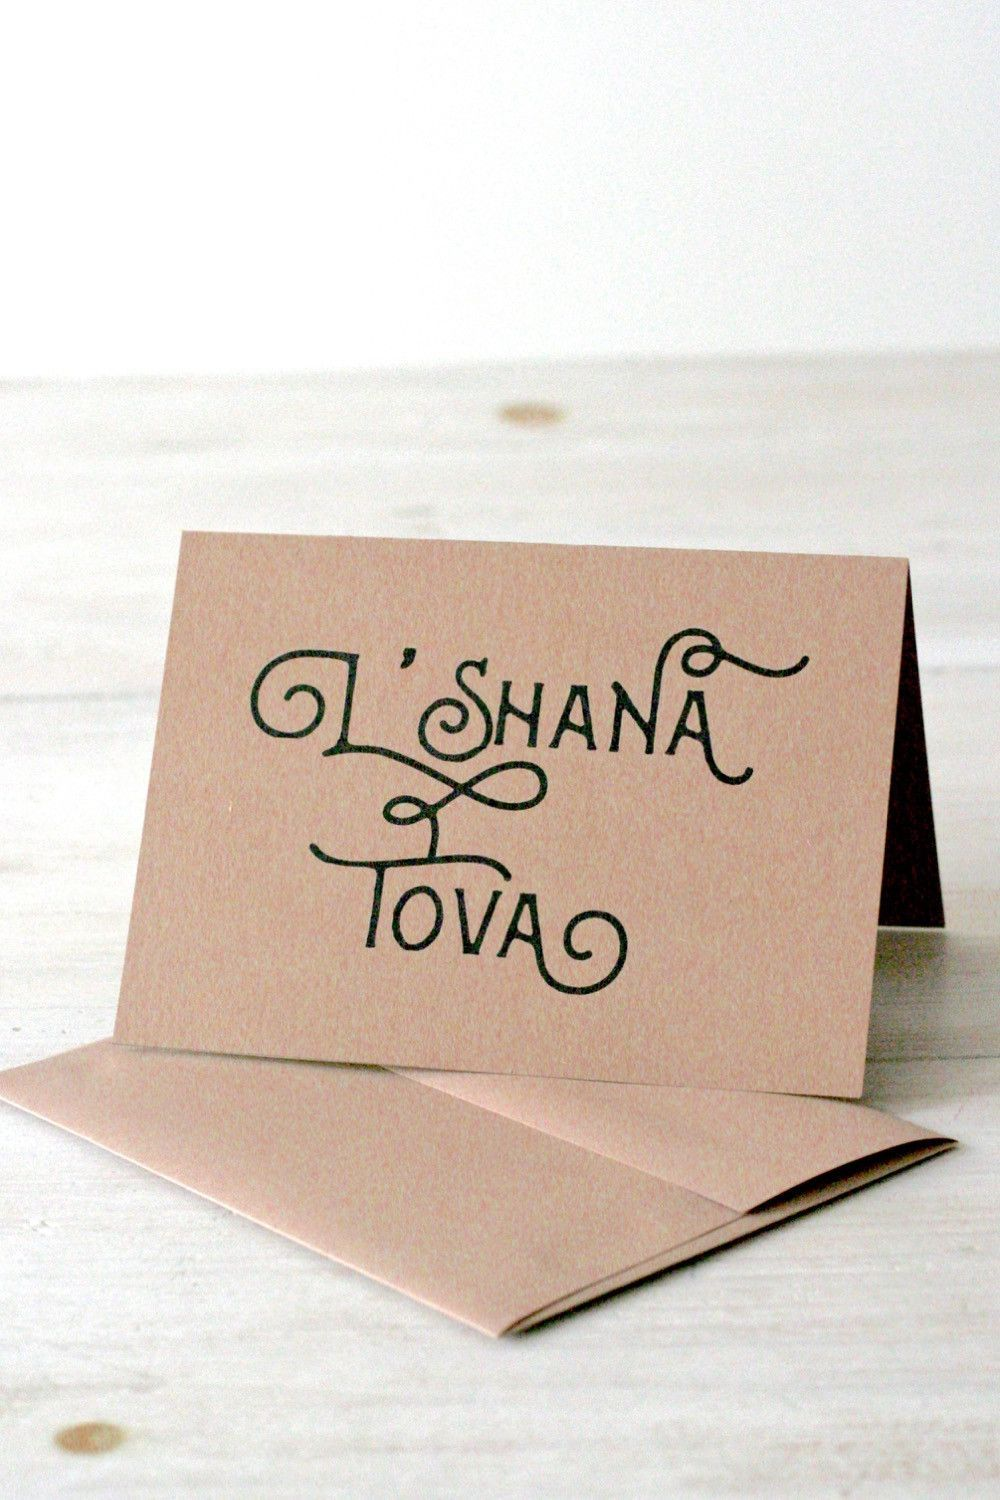 Lshanah tova jewish new year greeting card rosh hashanah and lshanah tova jewish new year greeting card kristyandbryce Choice Image